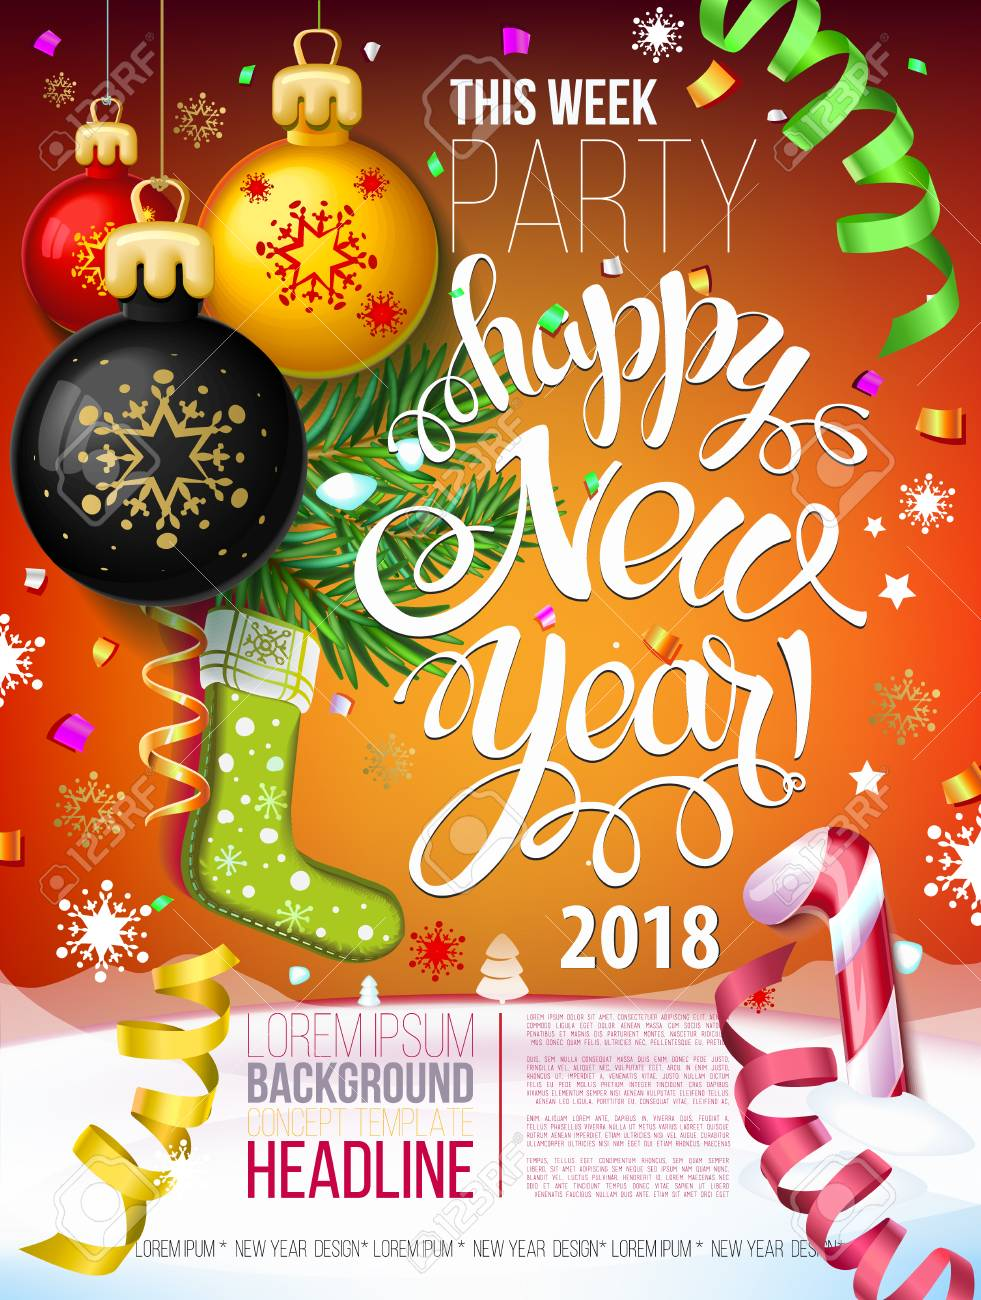 Merry Christmas Poster 2018.Happy New Year 2018 Decoration Poster Card And Merry Christmas